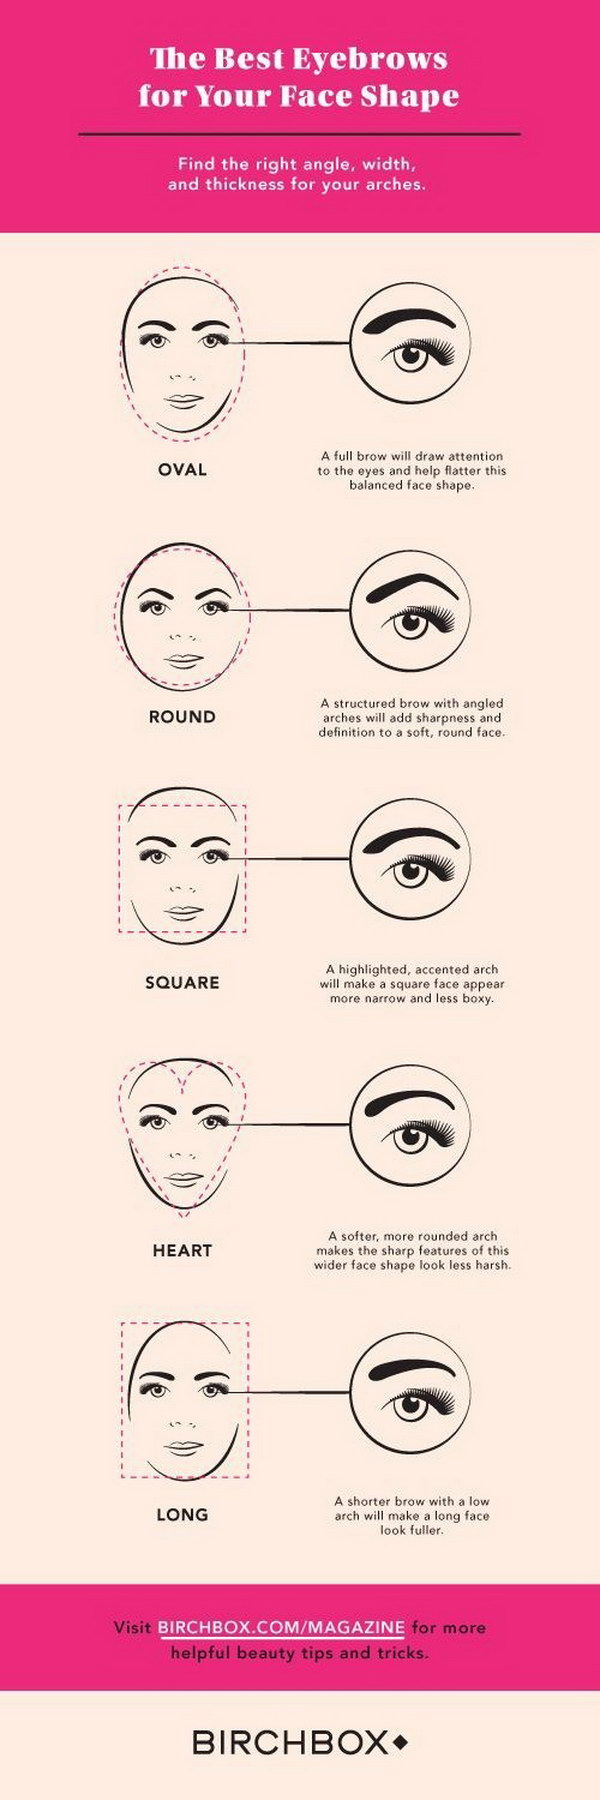 How to Get the Best Brows for Your Face.